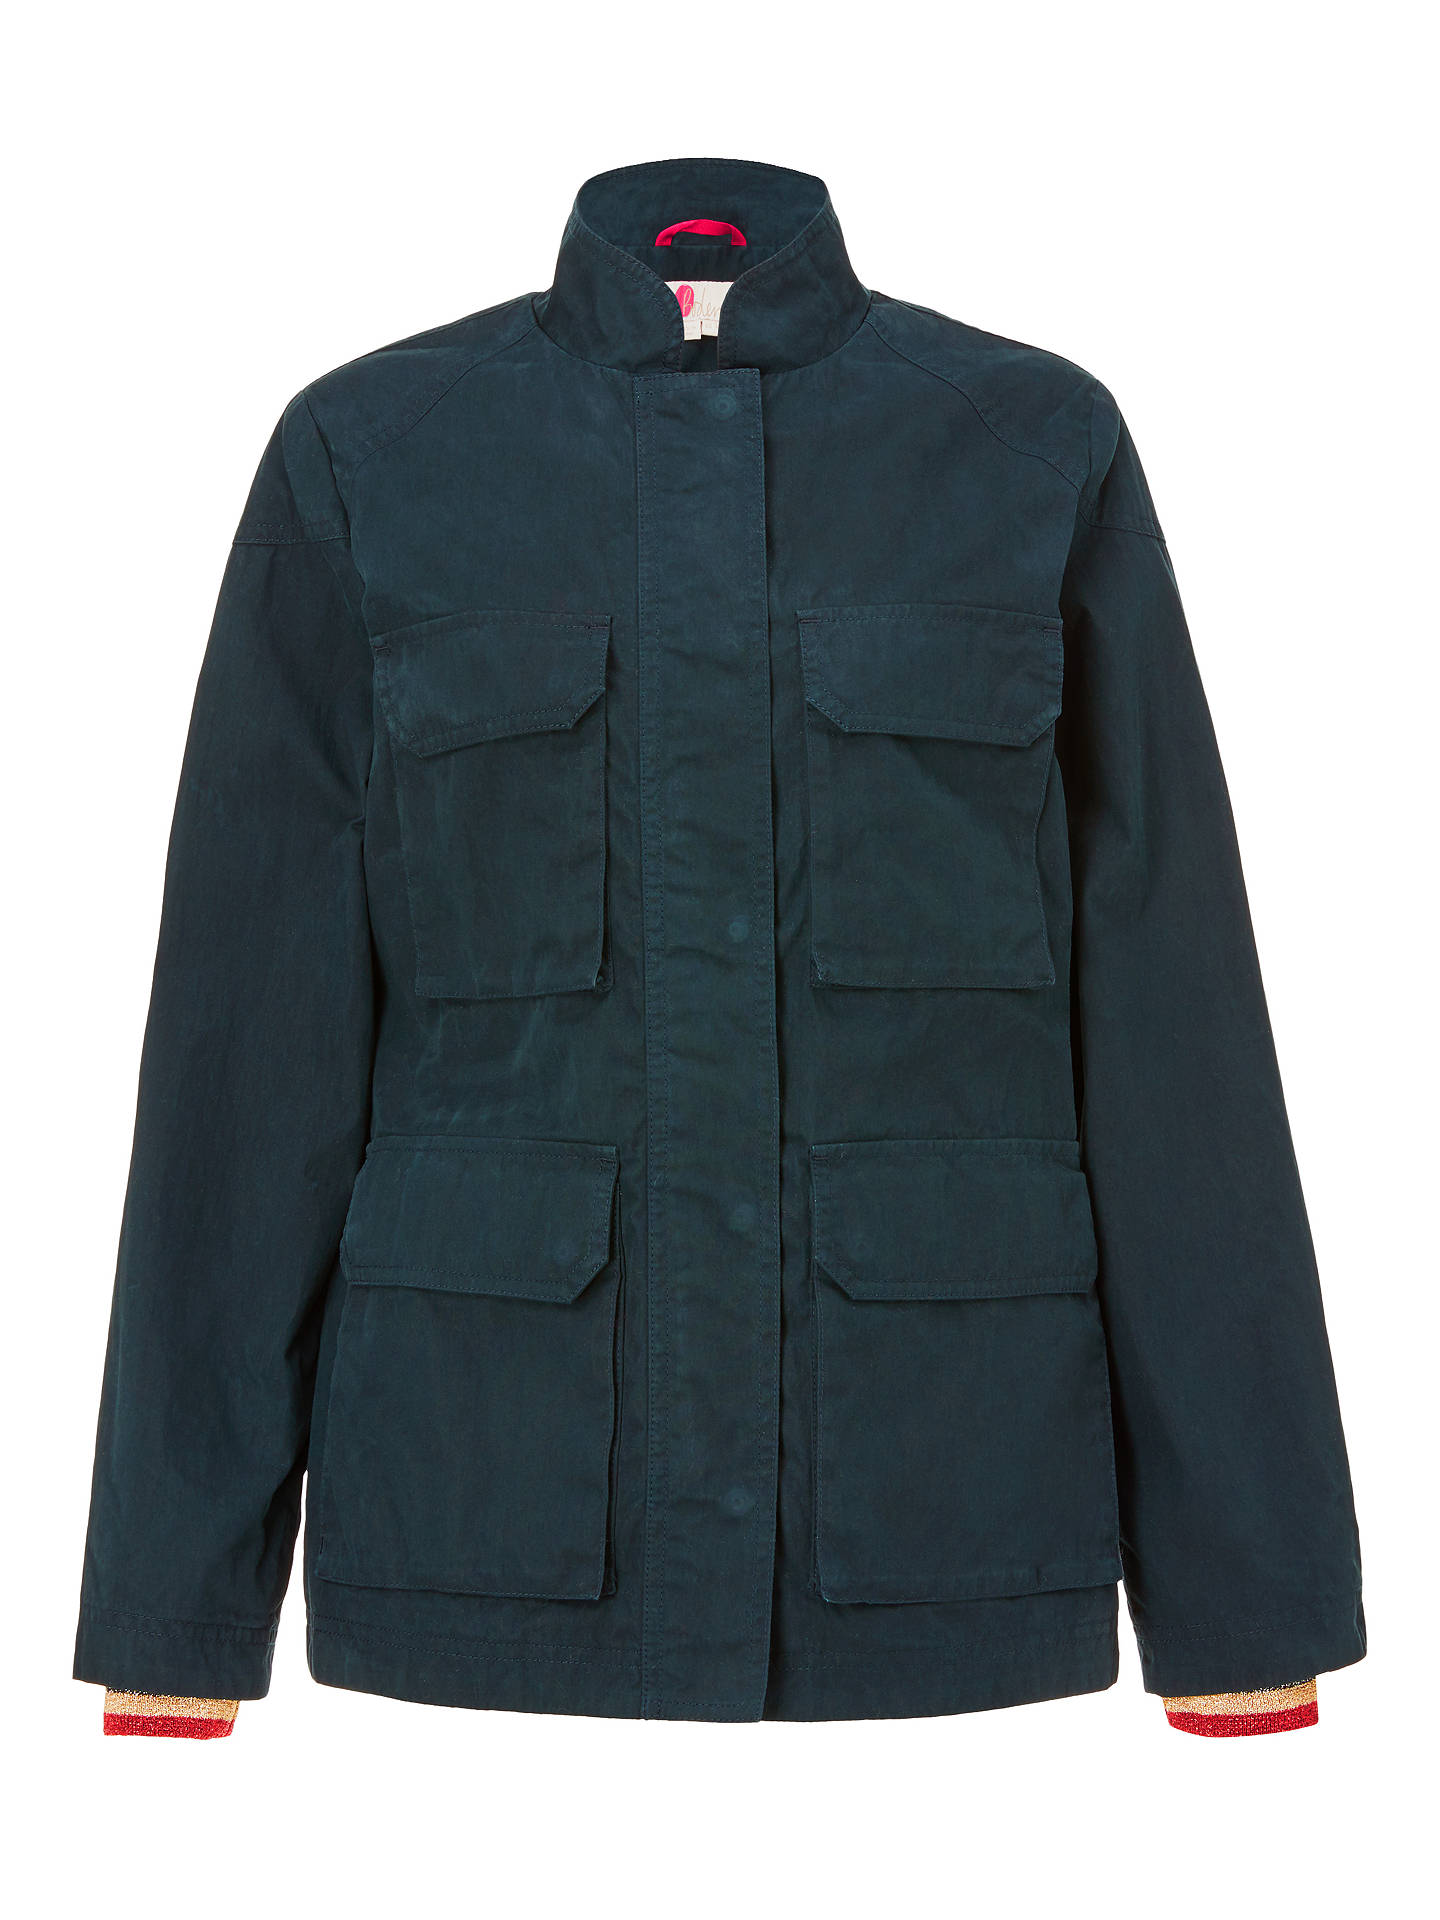 Buy Boden Routledge Wax Jacket, Navy, 8 Online at johnlewis.com